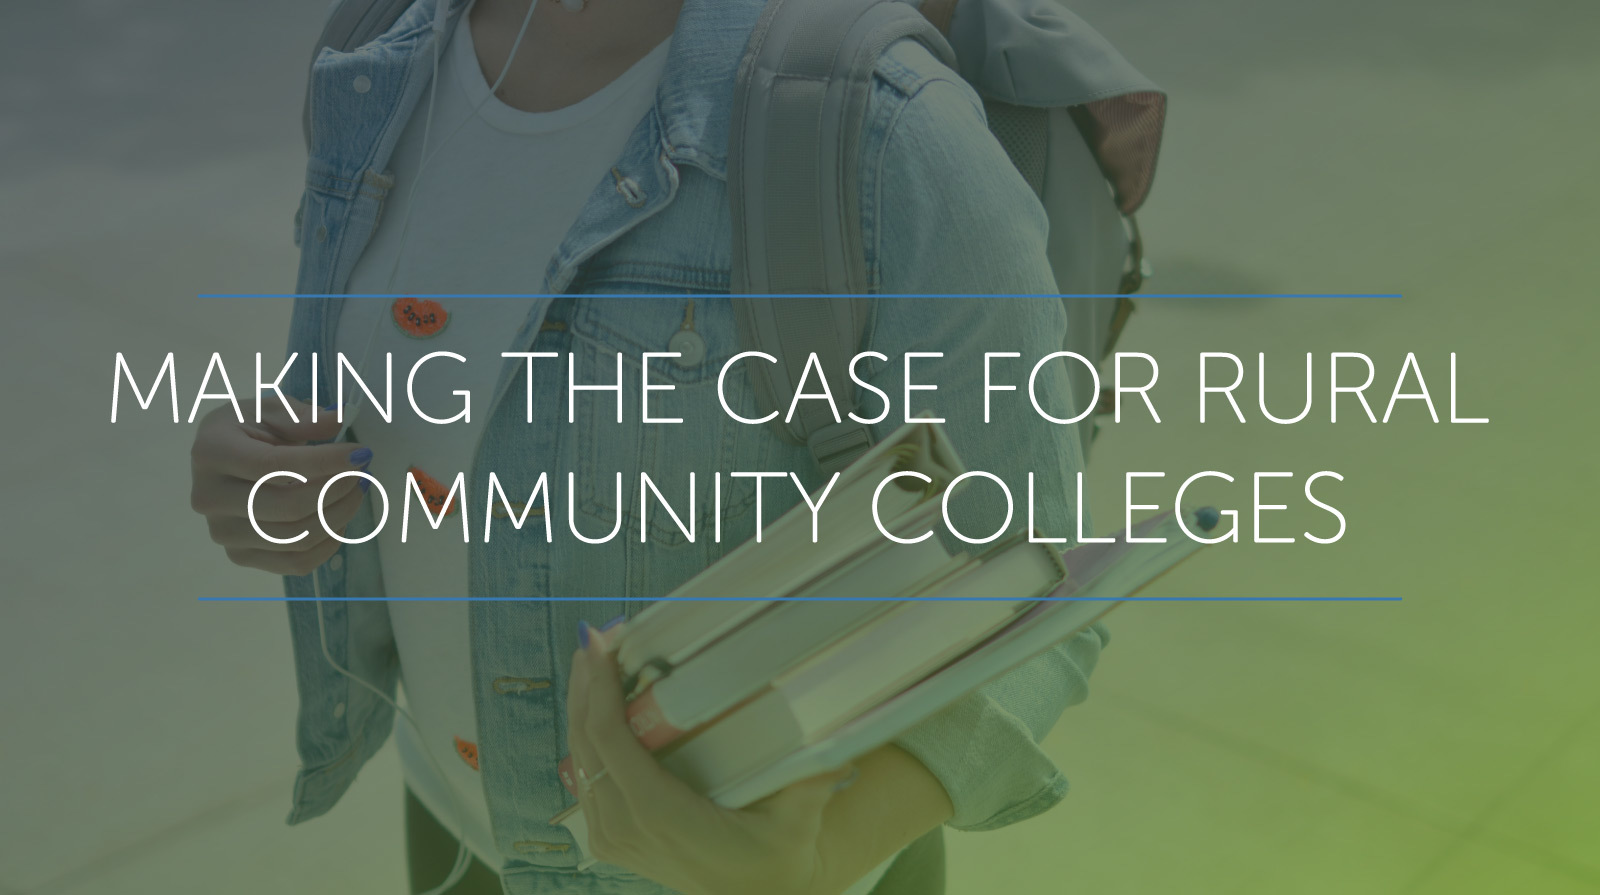 Picture of student holding books under text that says making the case for rural community colleges